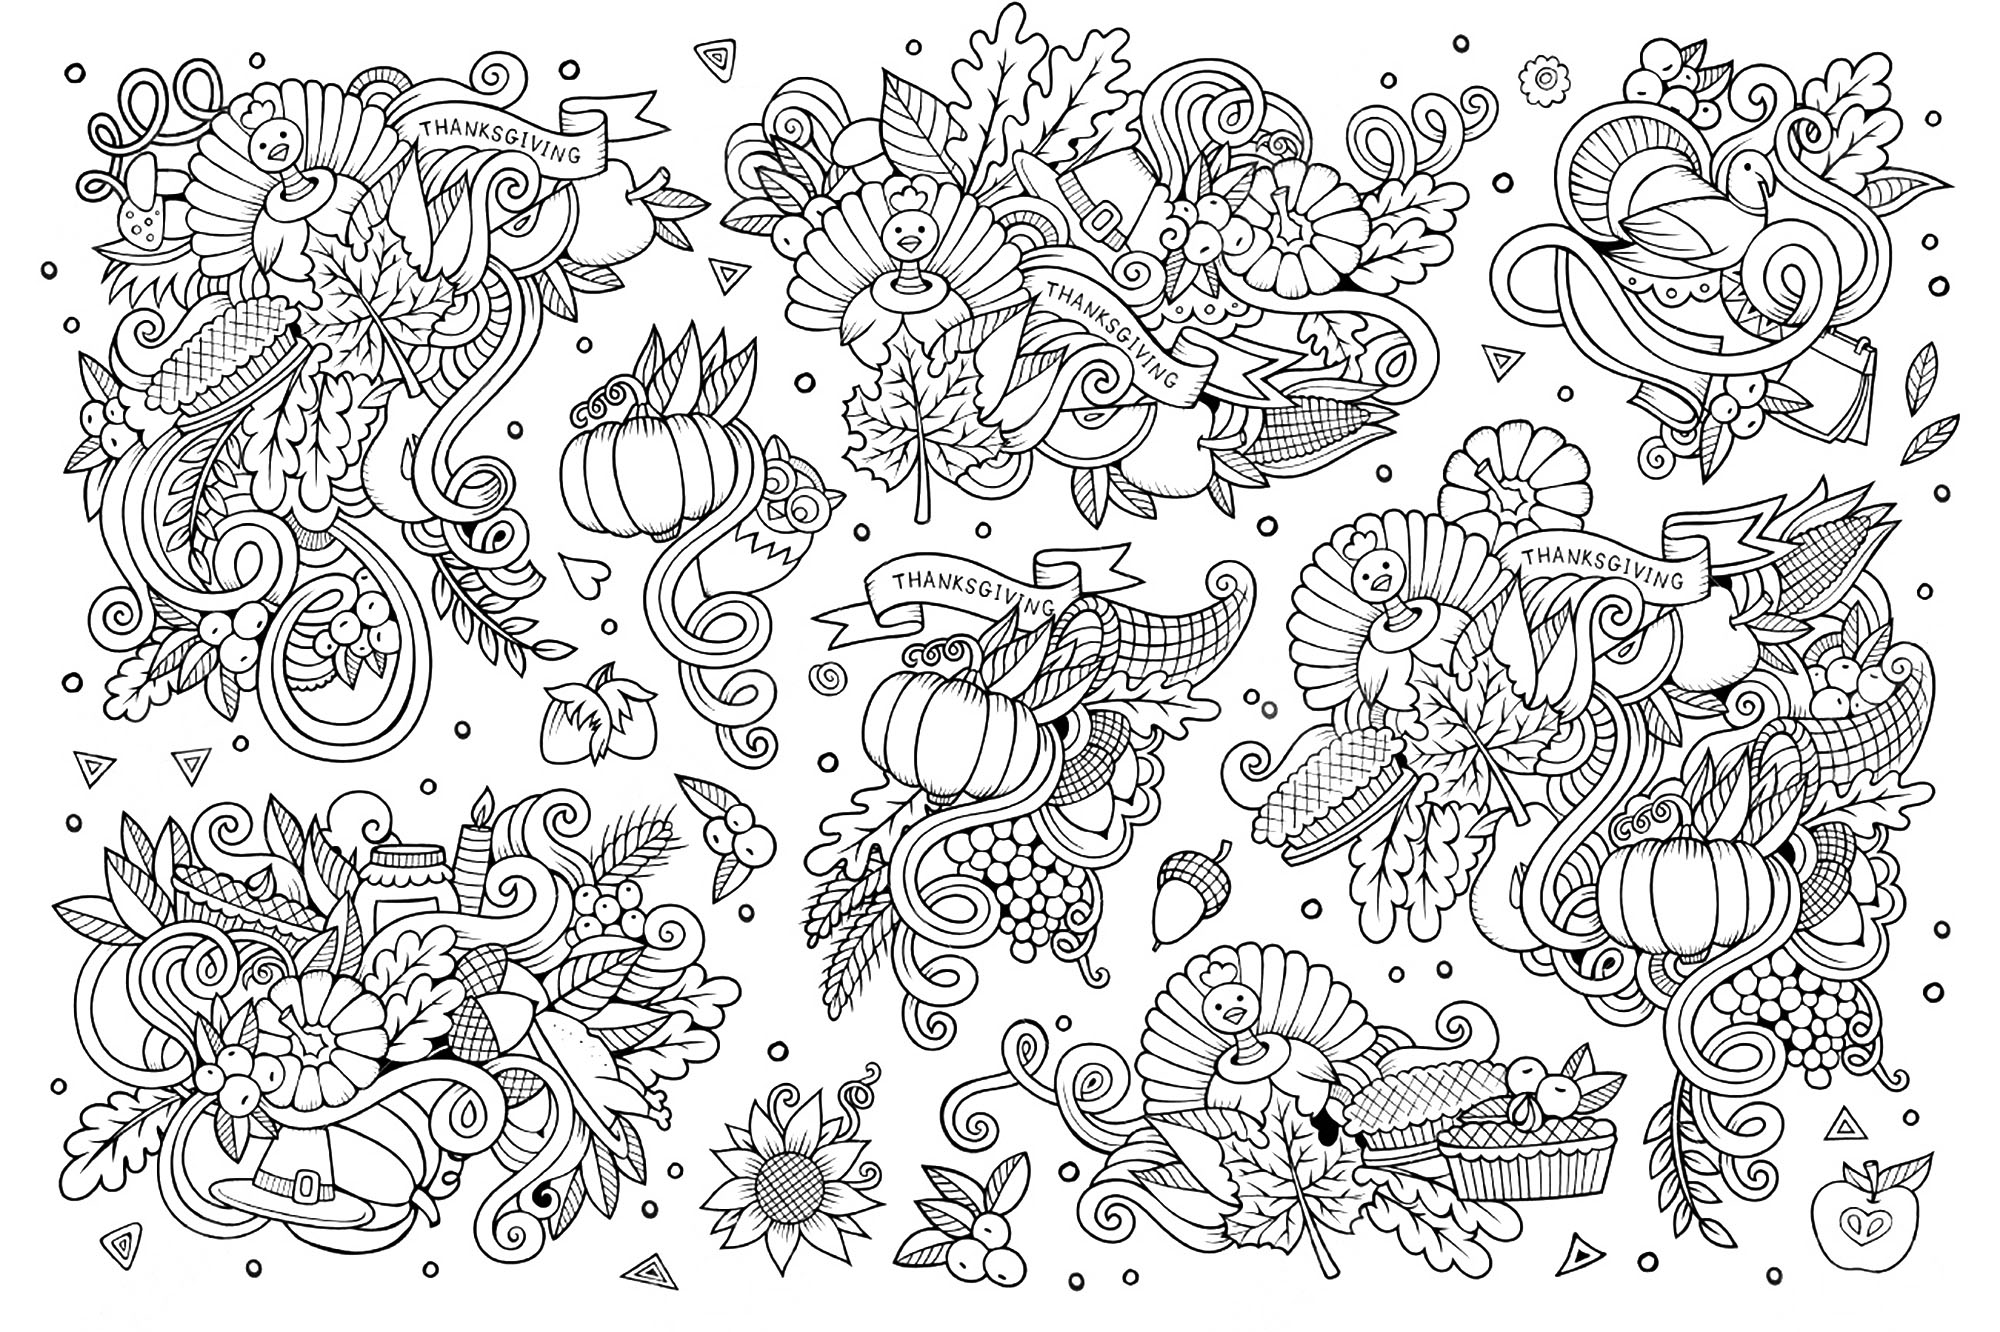 Thanksgiving doodle 3 Thanksgiving